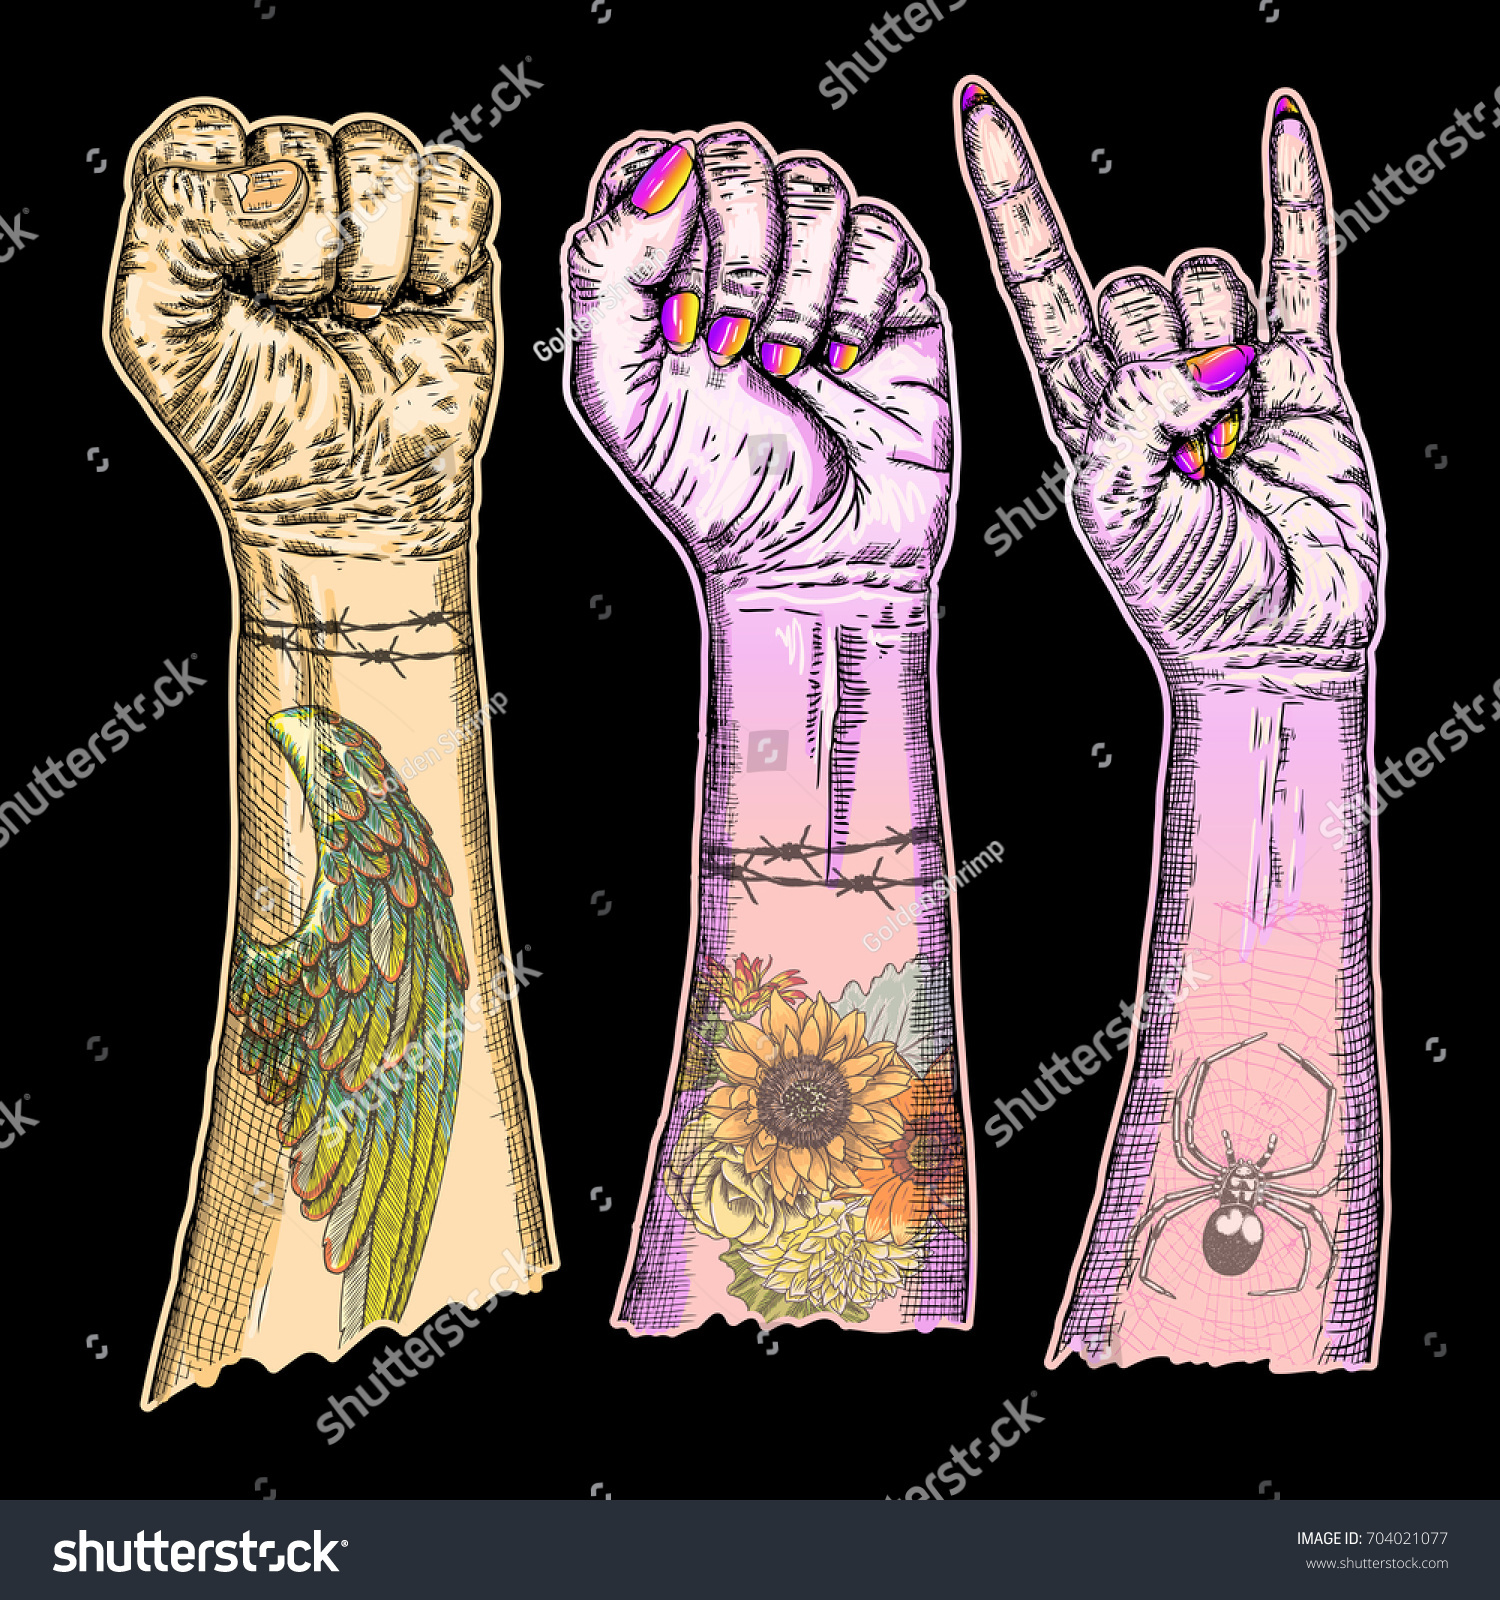 Set rock roll music hand sign stock vector 704021077 shutterstock set of rock and roll music hand sign hand drawn girl and guy style fist biocorpaavc Choice Image